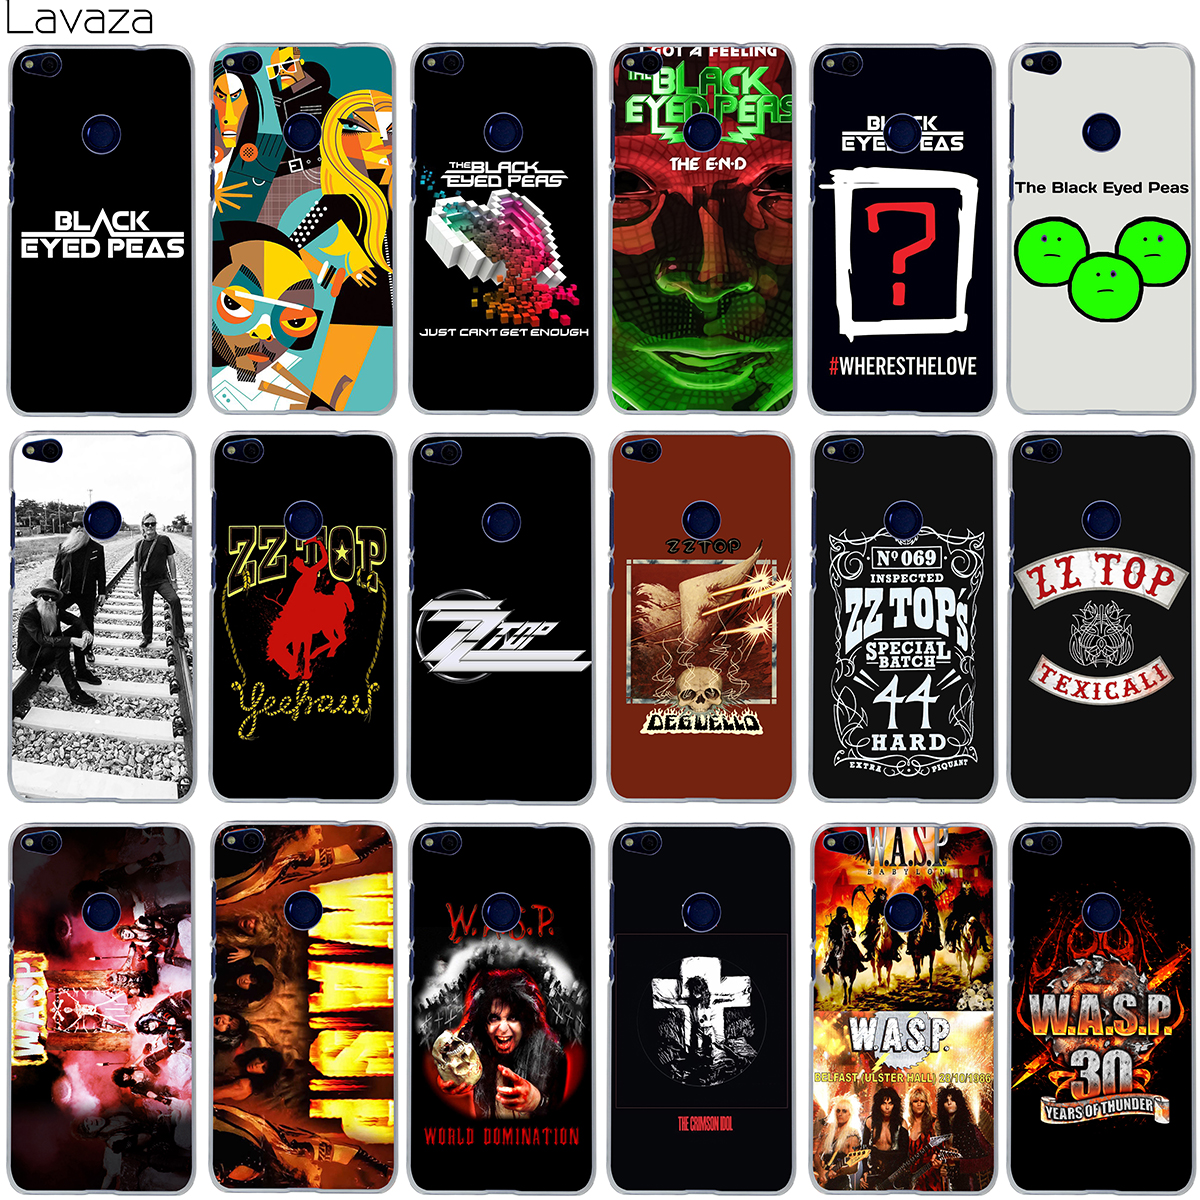 Lavaza The Black Eyed Peas ZZ Top W.A.S.P Band Case for Huawei Mate 10 P8 P9 P10 Lite Pro Mini 2017